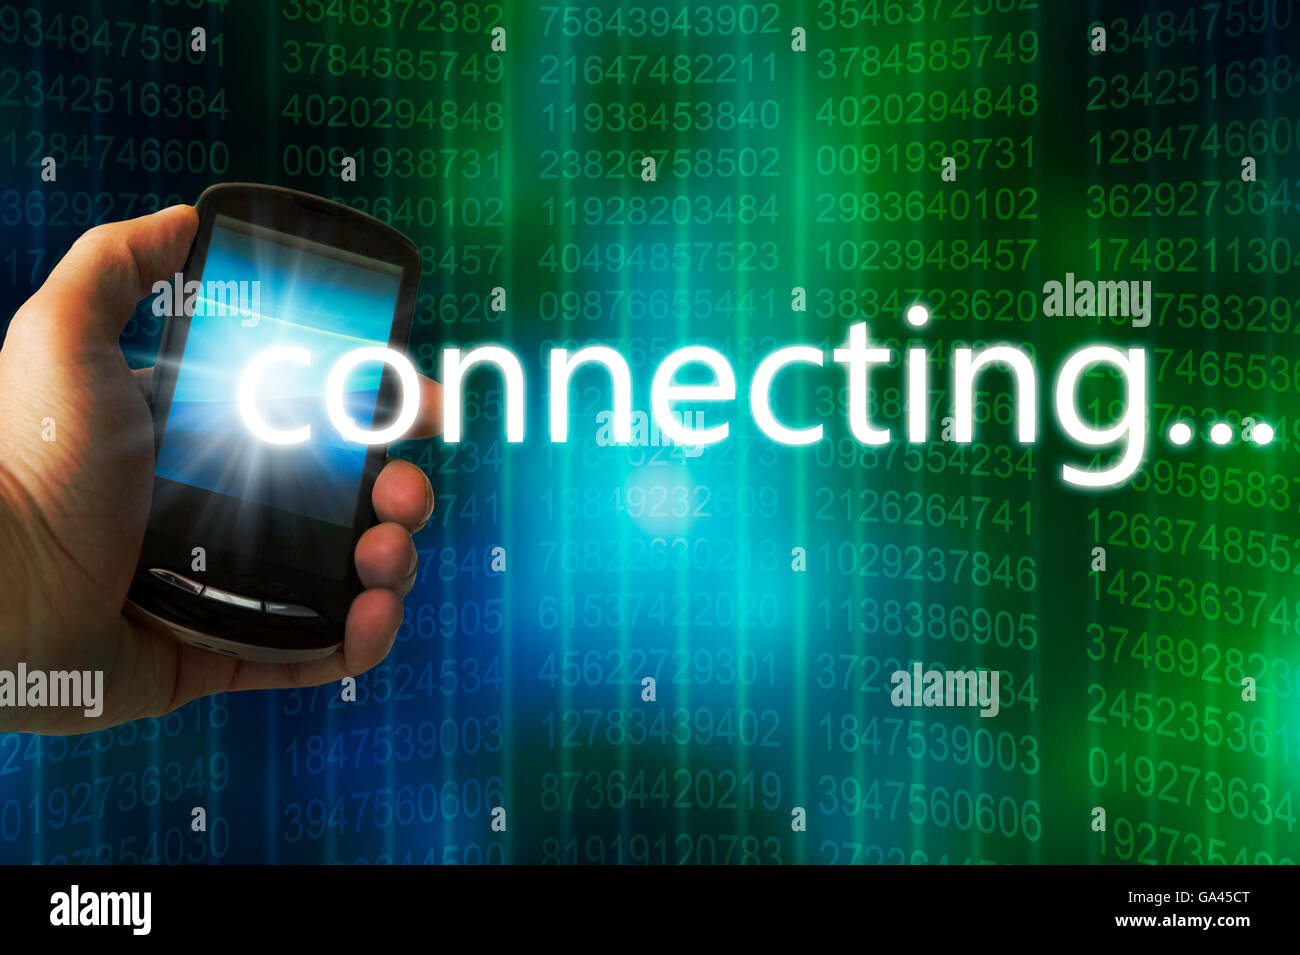 hand holding a cellphone connecting to a wireless network - Stock Image